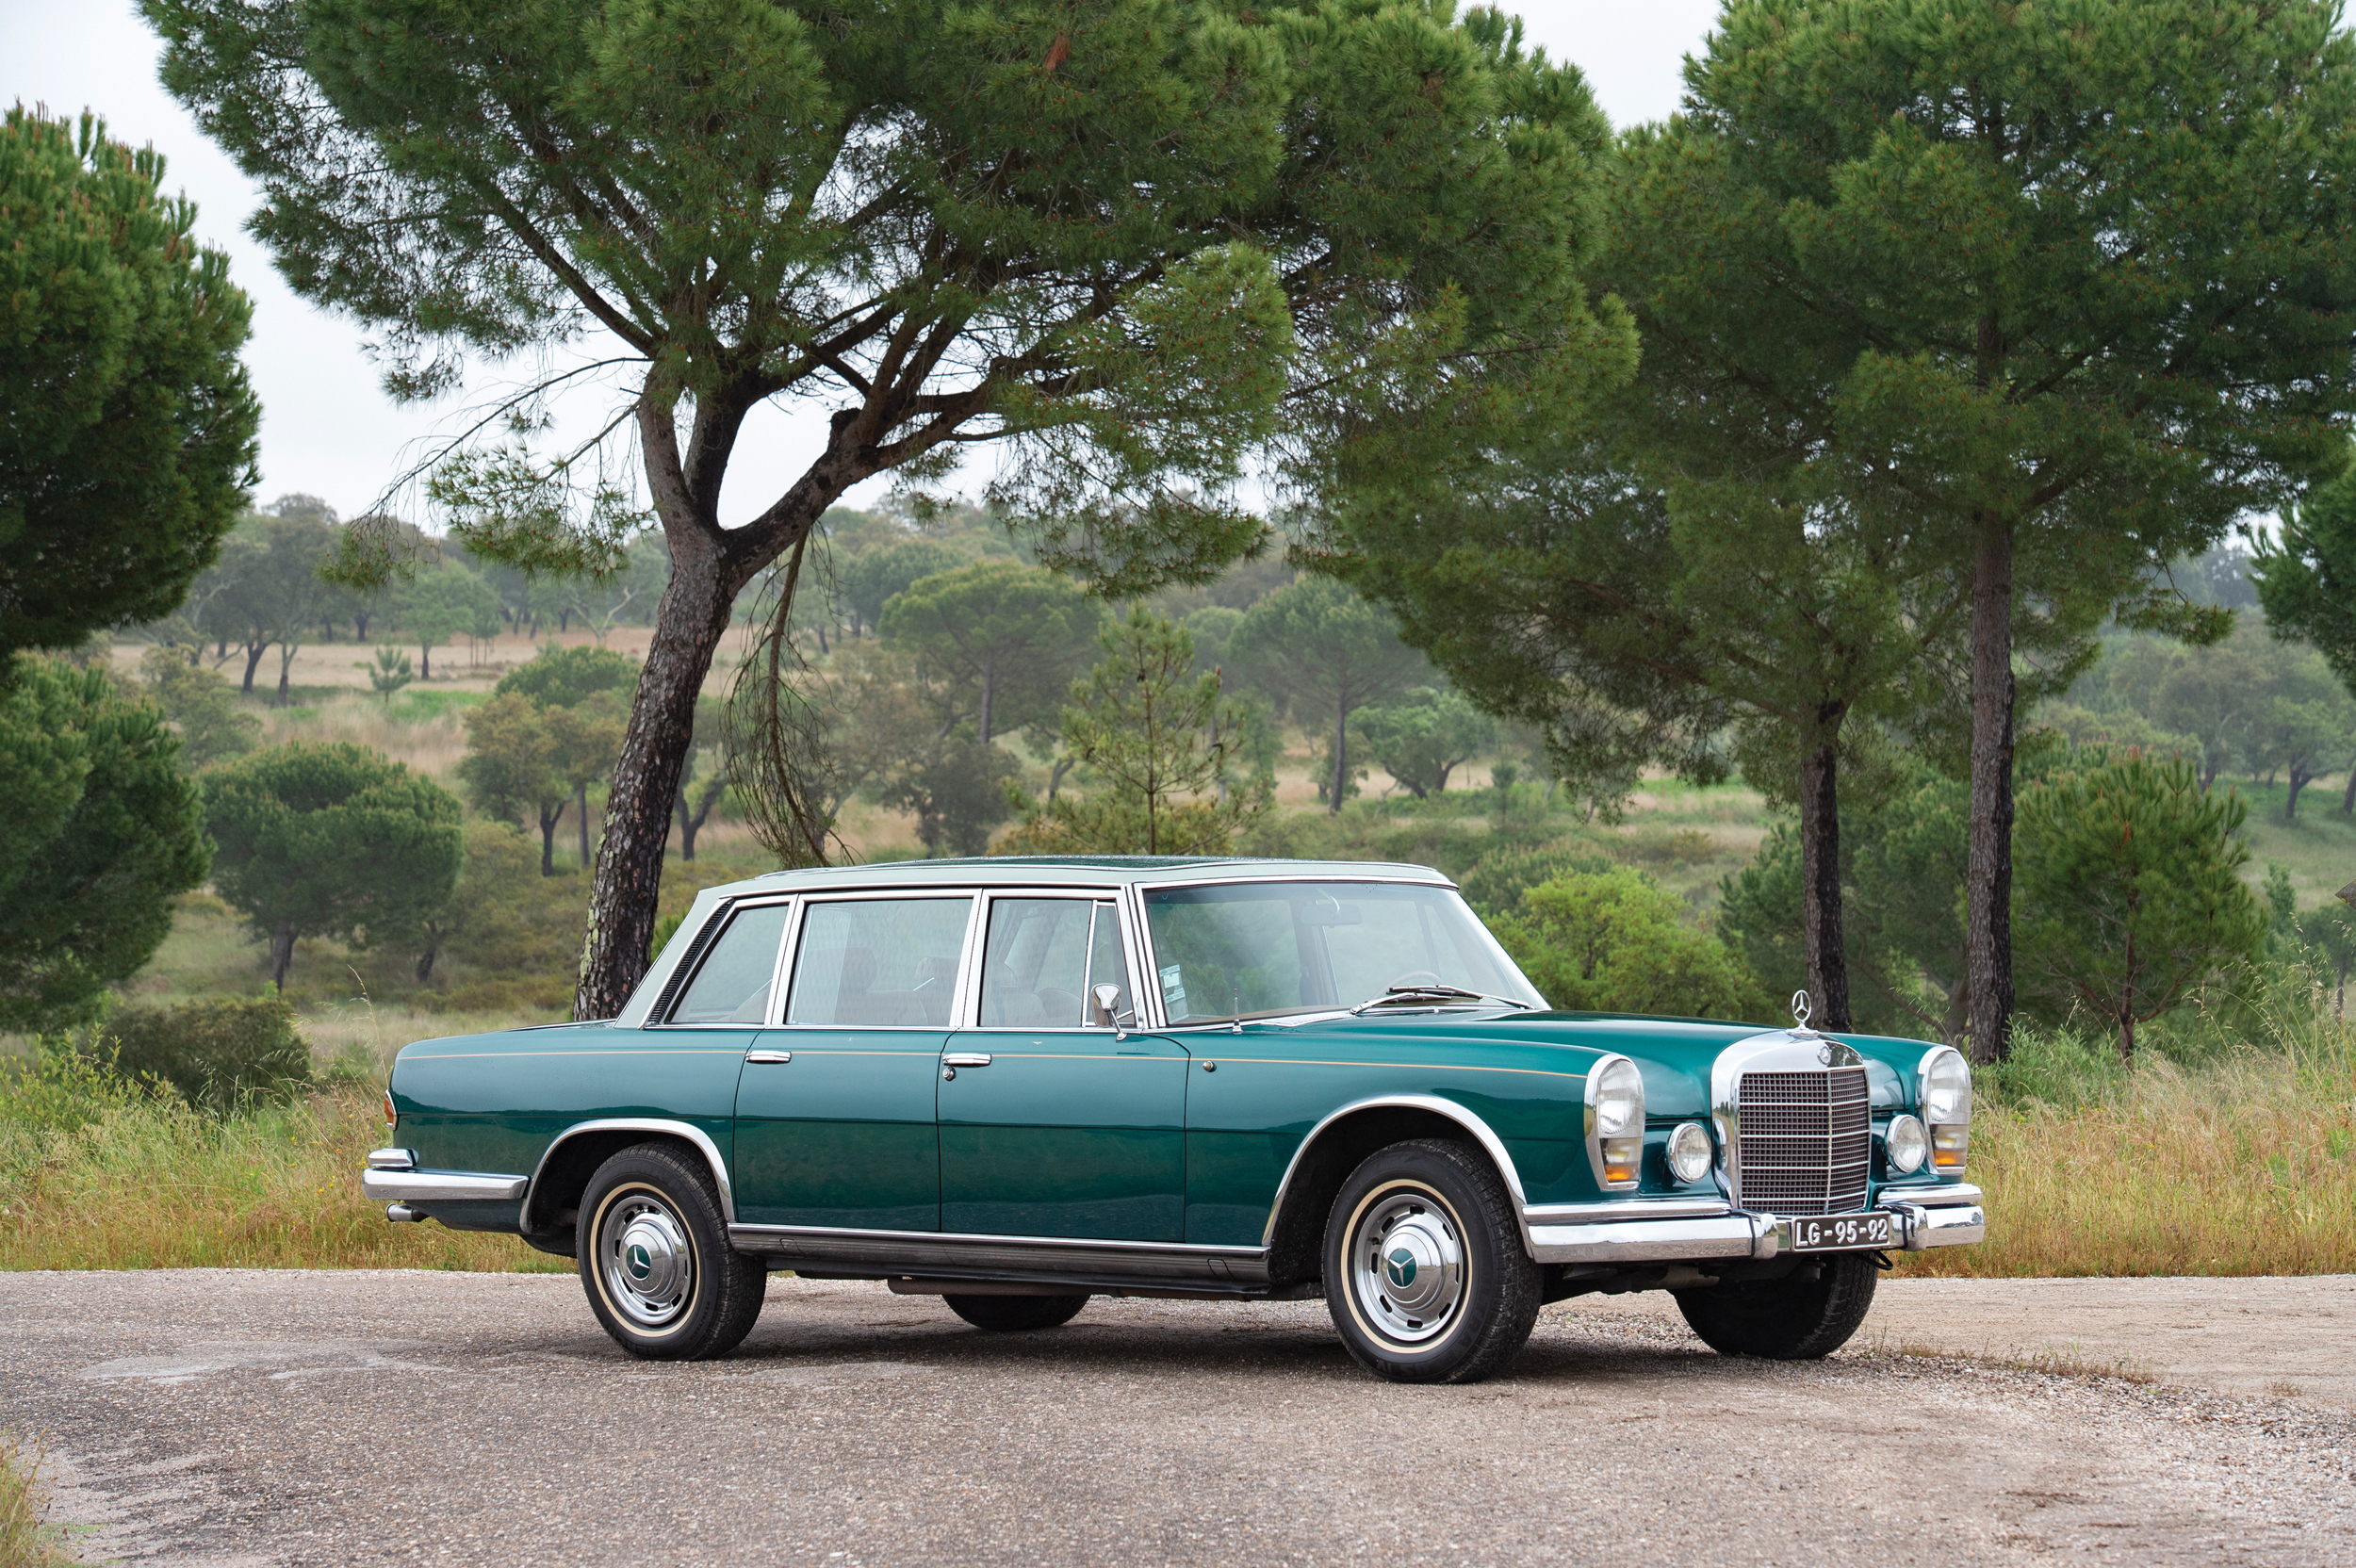 Sarragga Collection - 1966 Mercedes-Benz 600 Sedan (Tom Gidden © 2019 Courtesy of RM Sotheby's) [4]